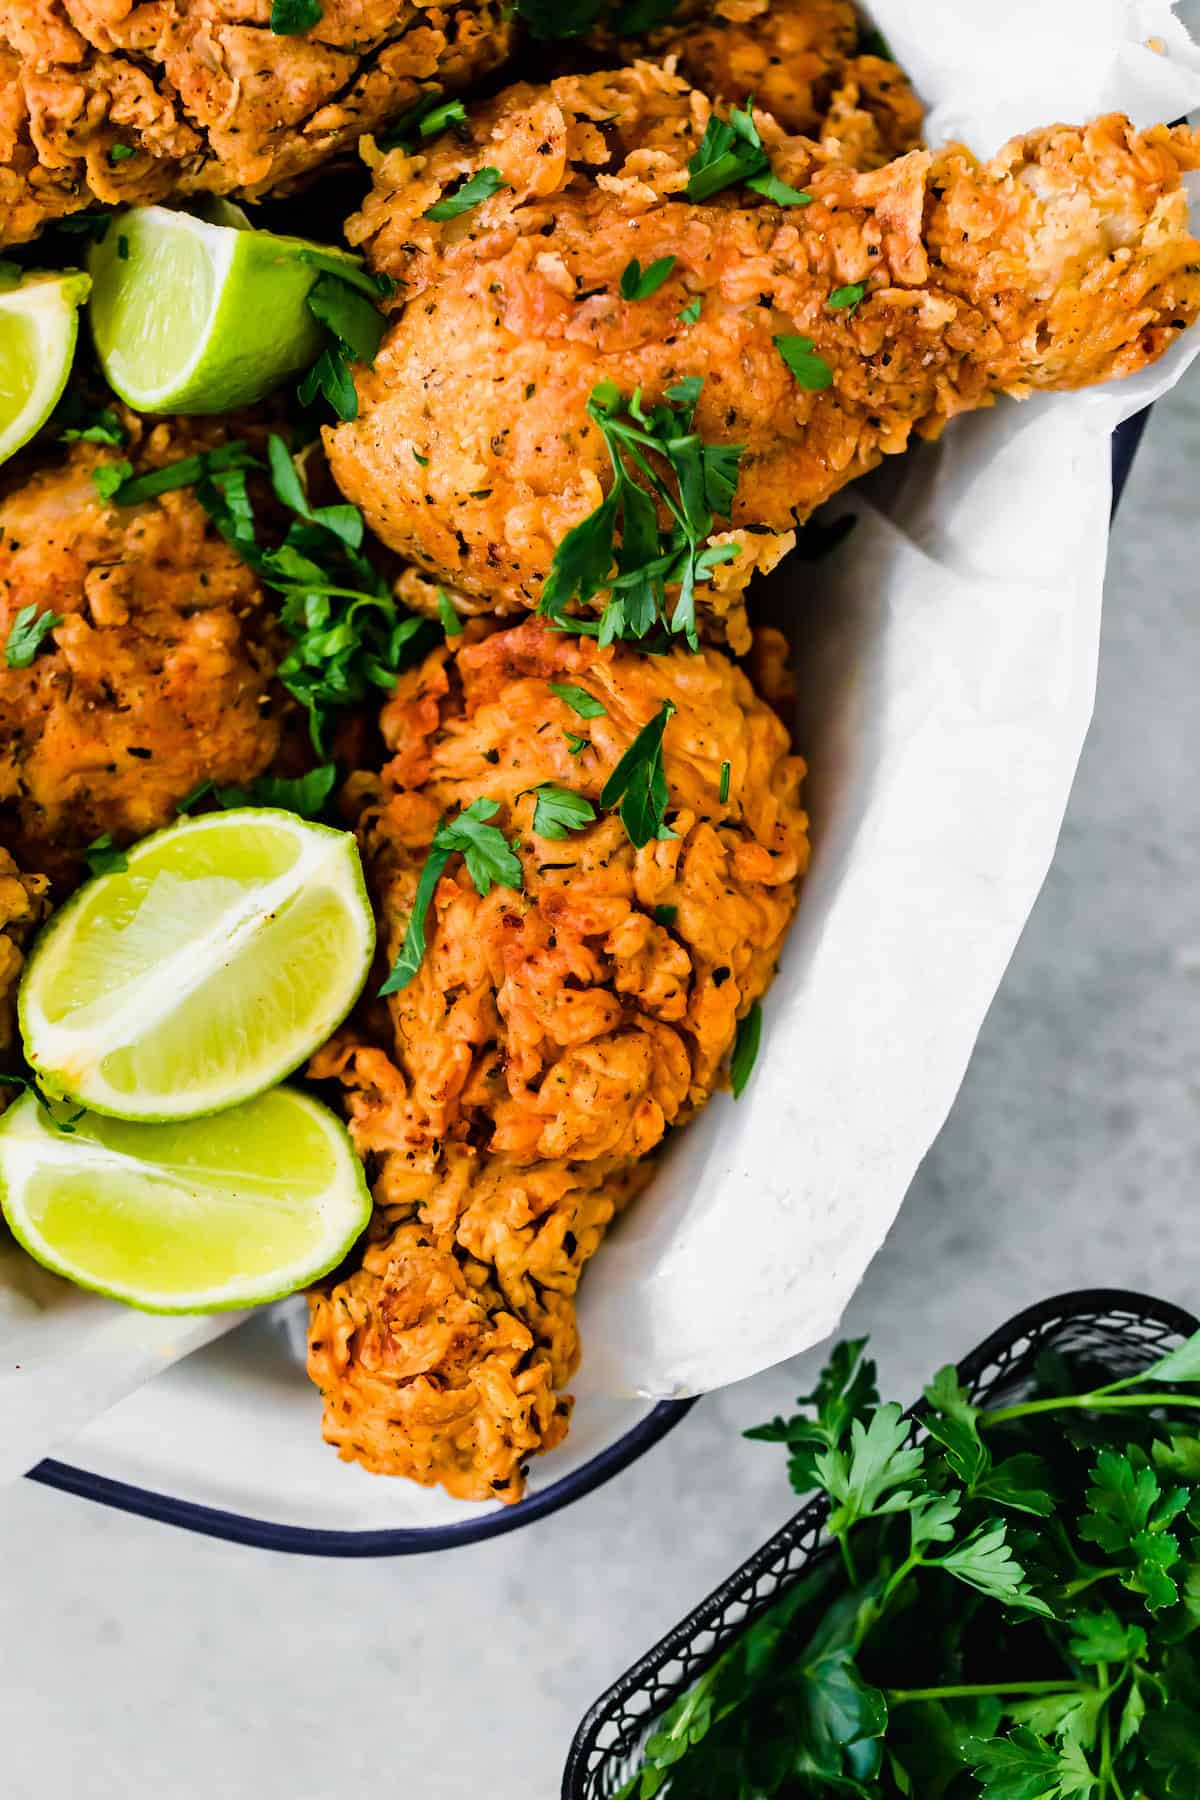 A Basked of Buttermilk Fried Chicken with Lime Wedges Inside